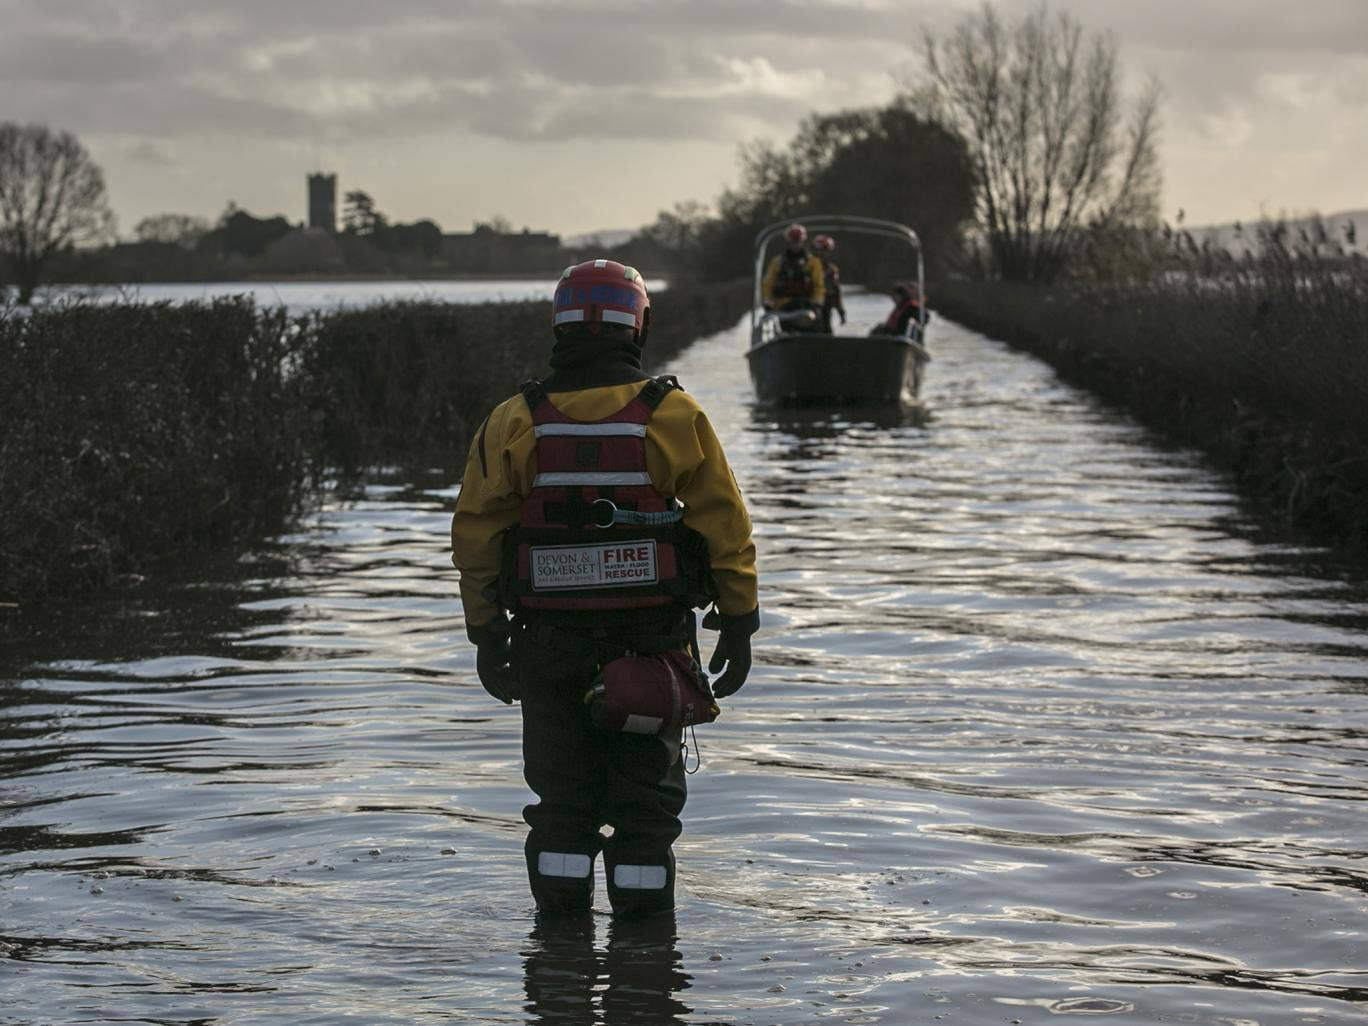 The humanitarian support boat operated by a crew from Devon and Somerset Fire and Rescue Service arrives from Muchelney, a village still cut off by flood water near Langport in Somerset